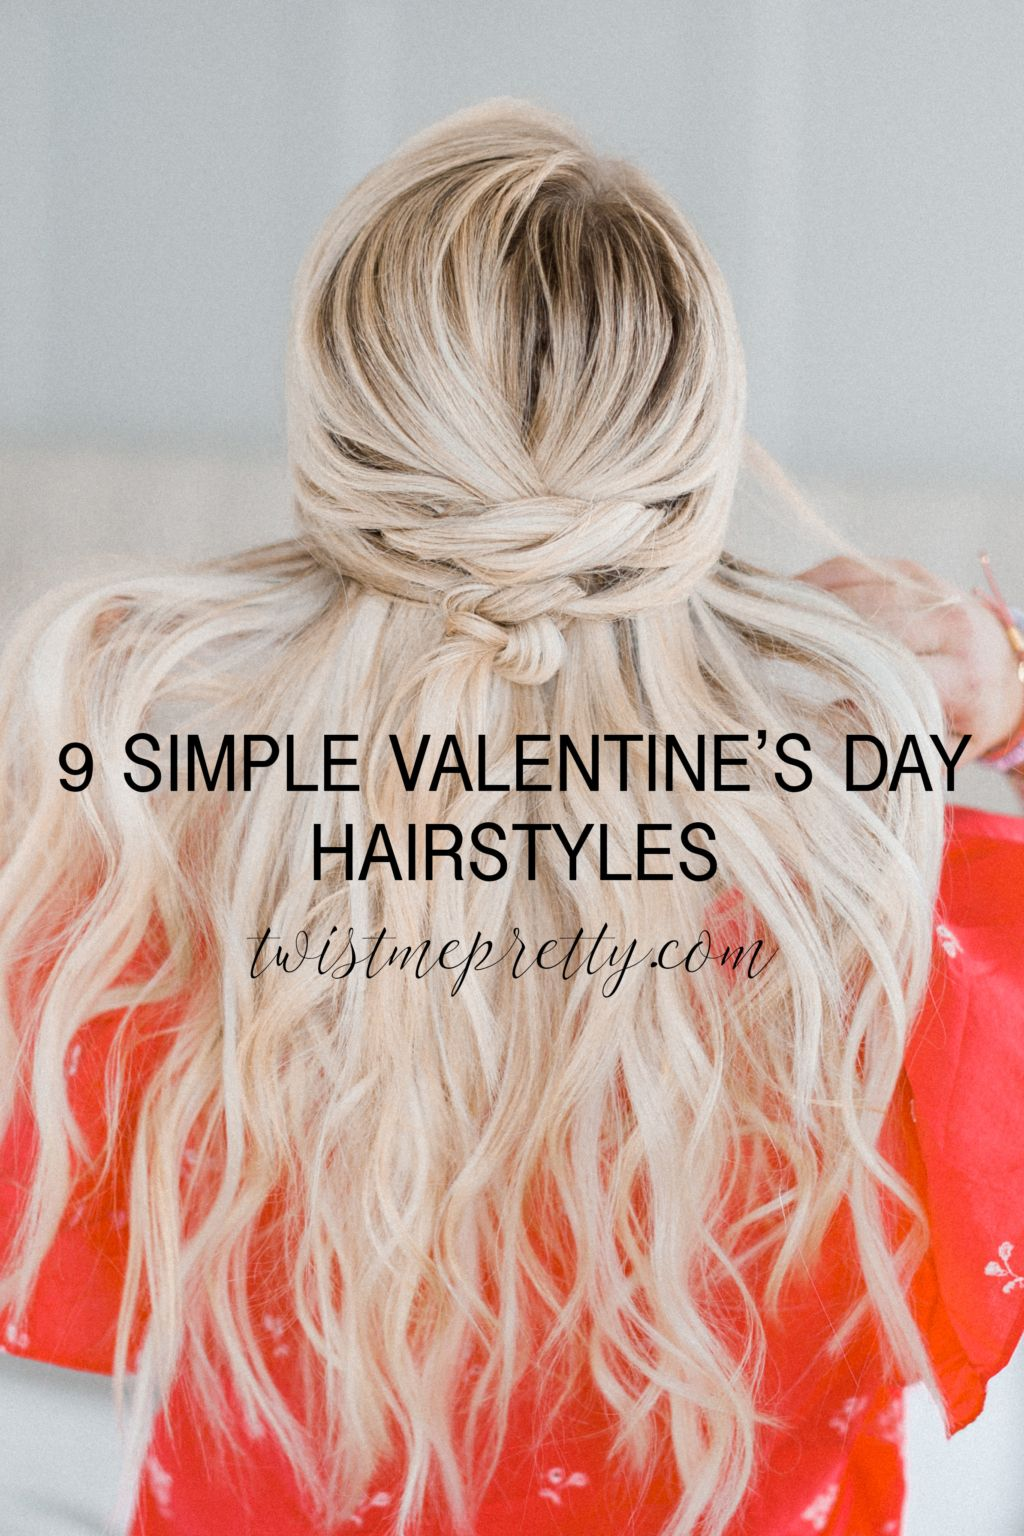 9 Quick Hairstyles for Valentines Day - Style Round-Up - Twist Me Pretty